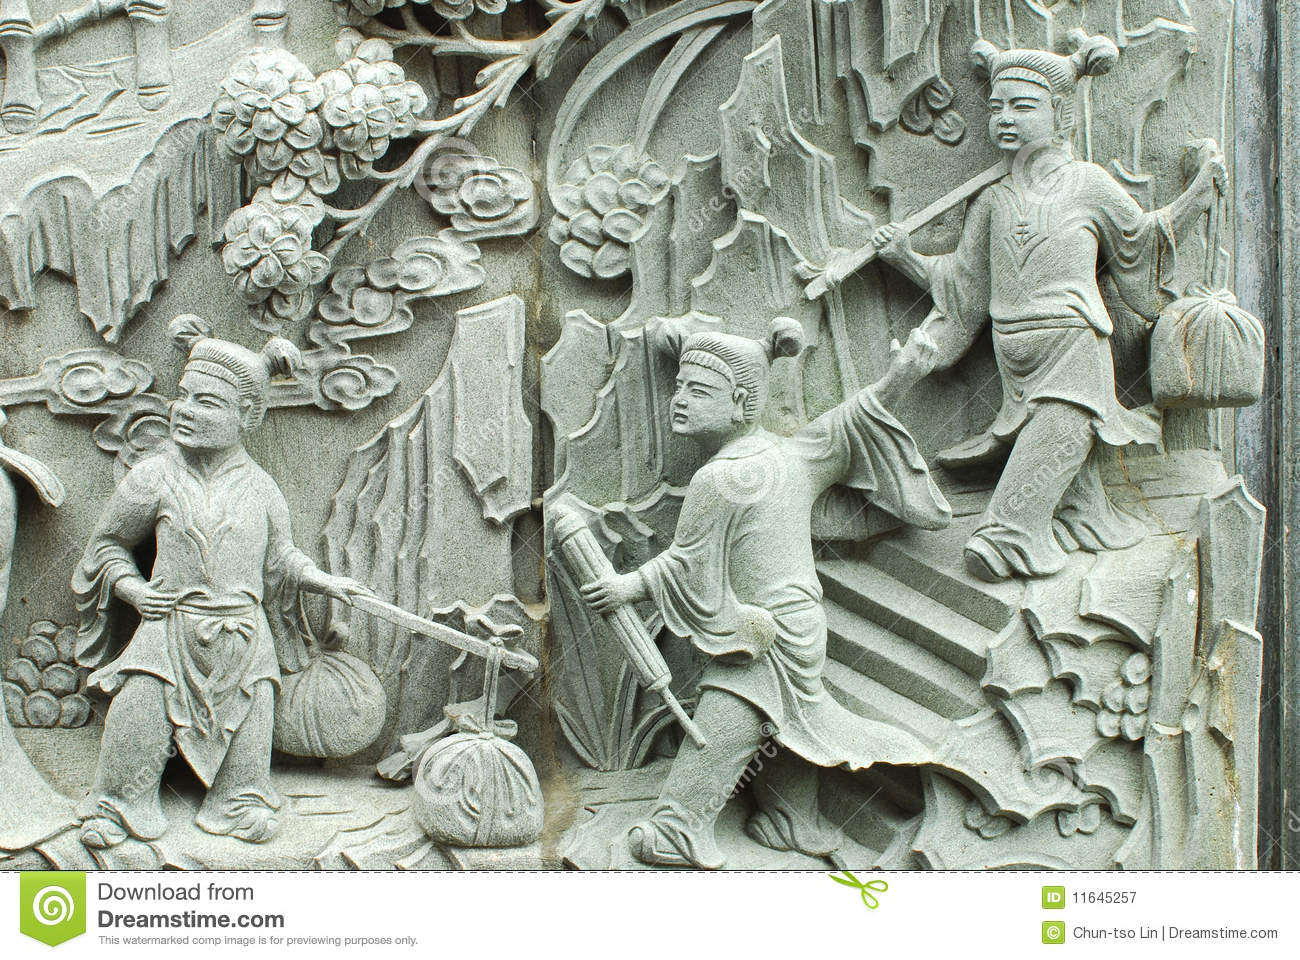 Chinese fable by stone carving stock image